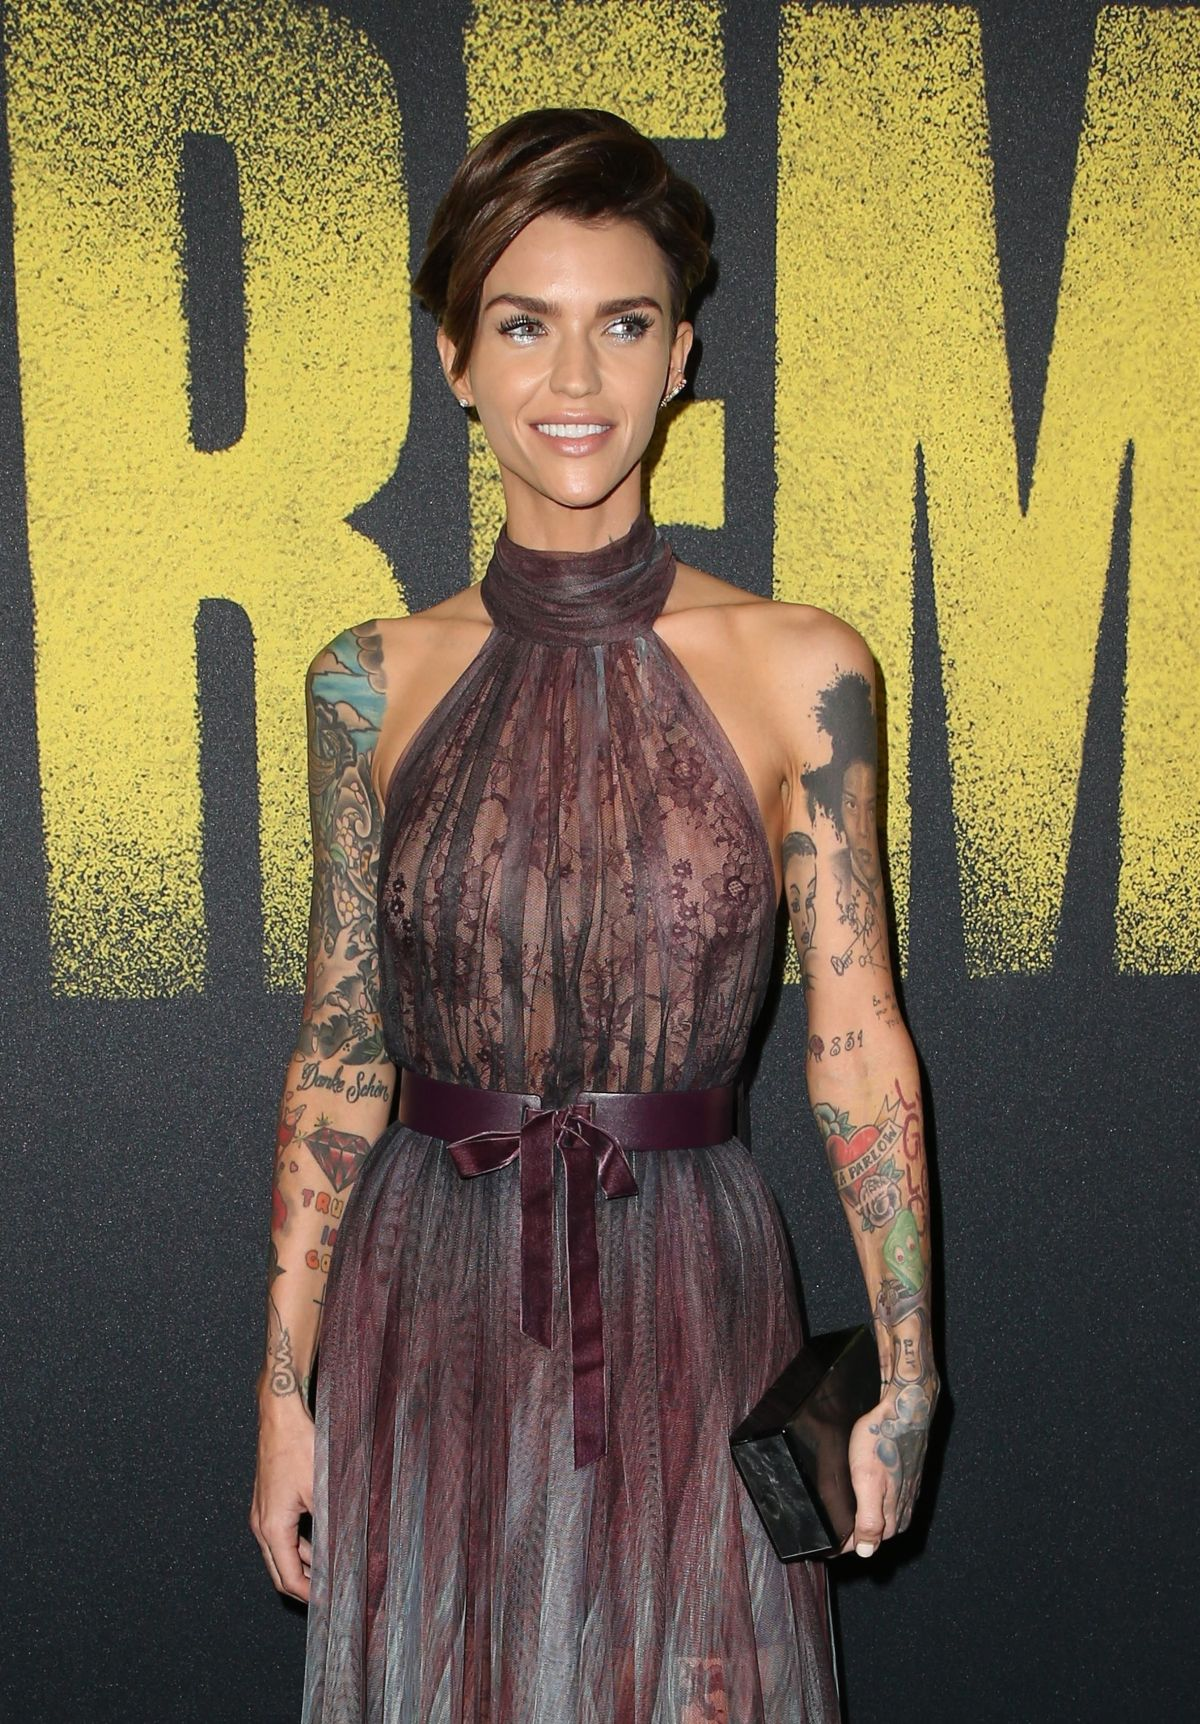 Ruby Rose At Pitch Perfect 3 Premiere In Hollywood 12 12